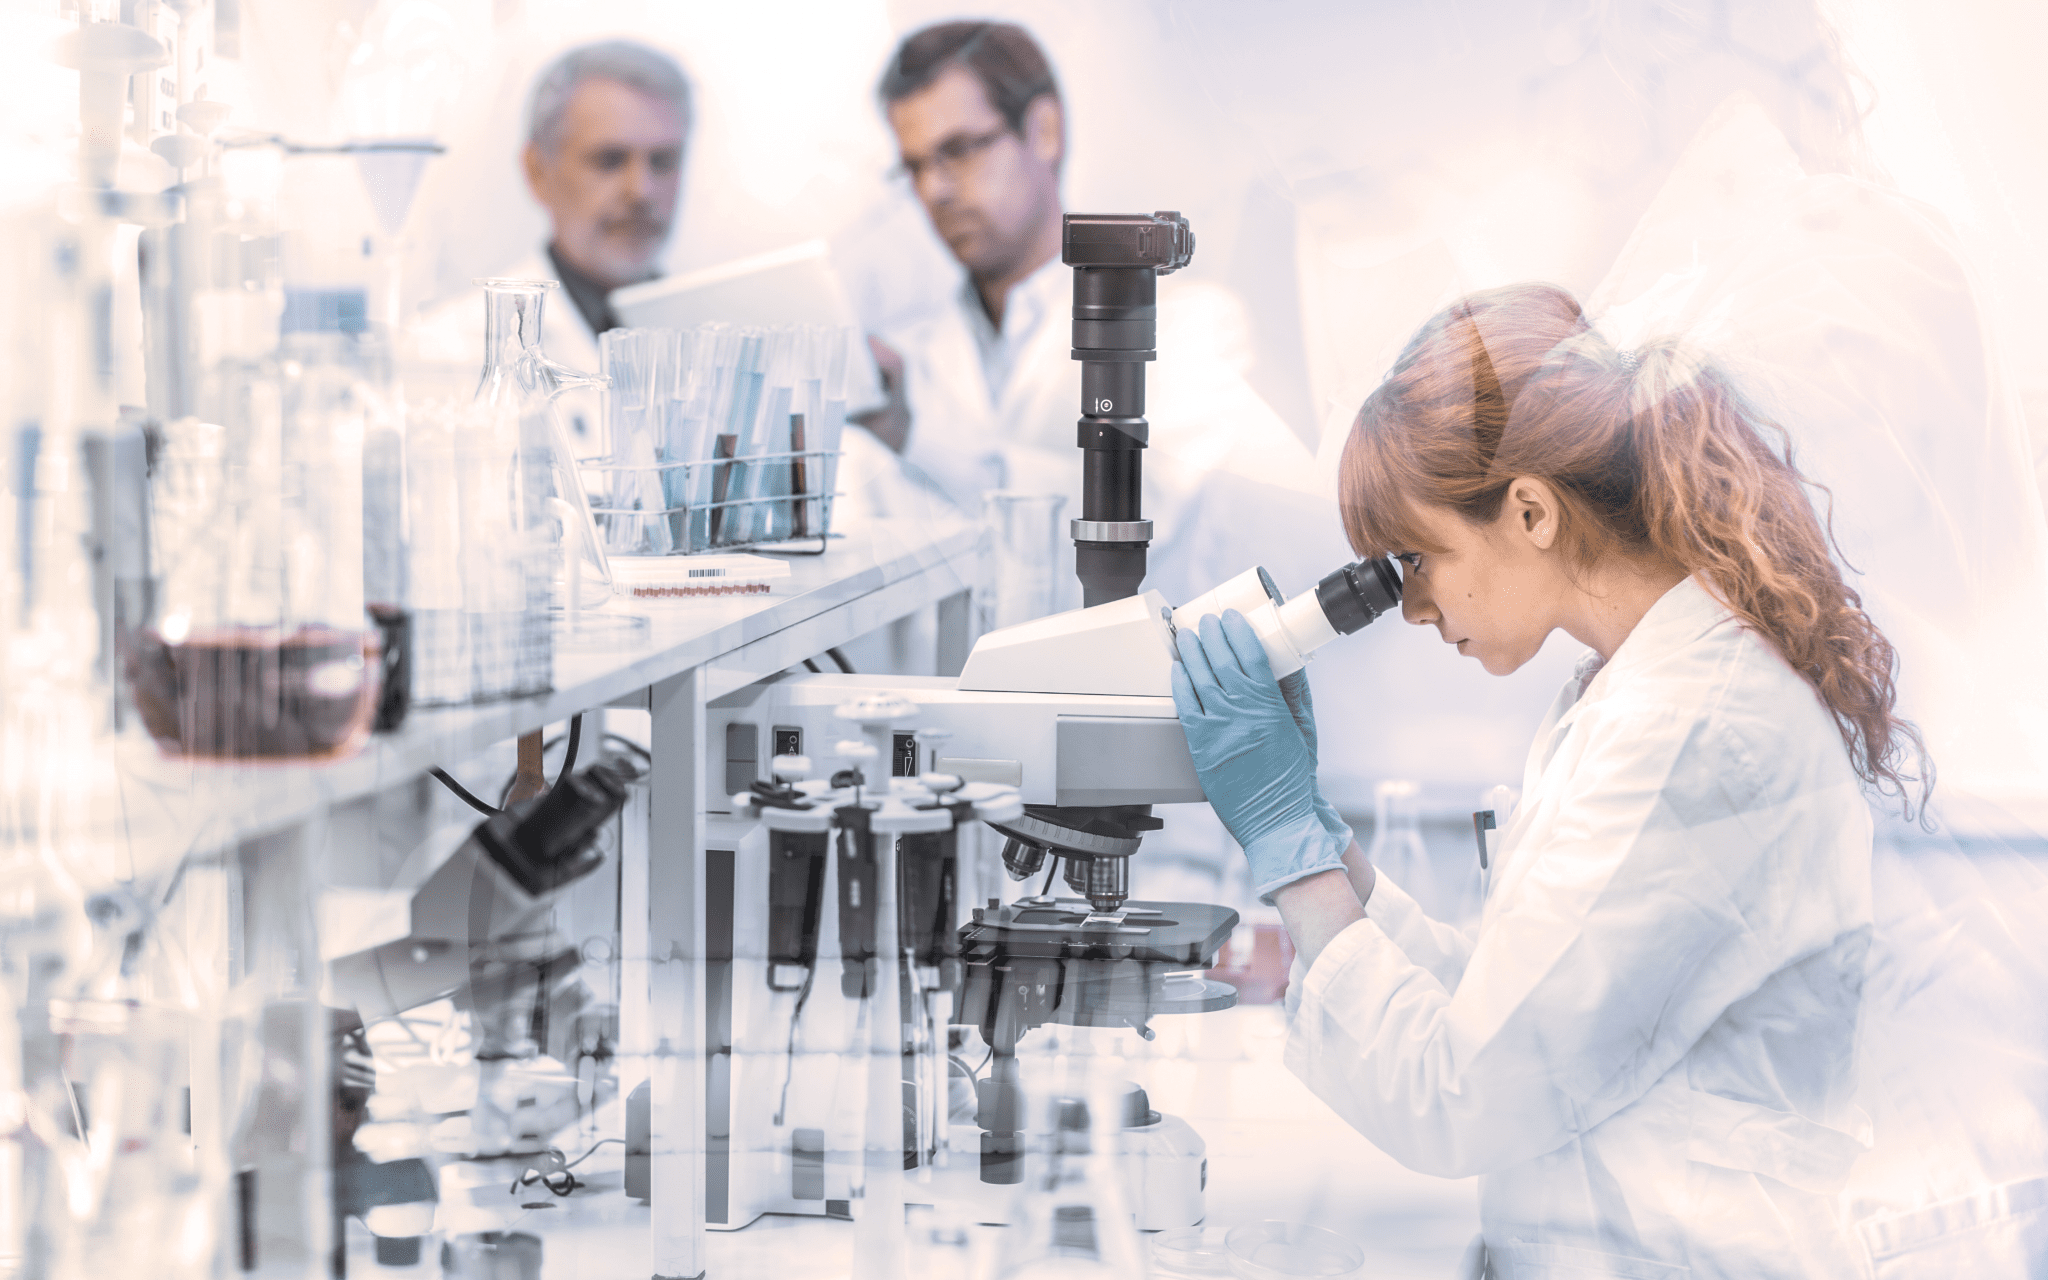 Mesothelioma researchers analyzing cell types in a lab.